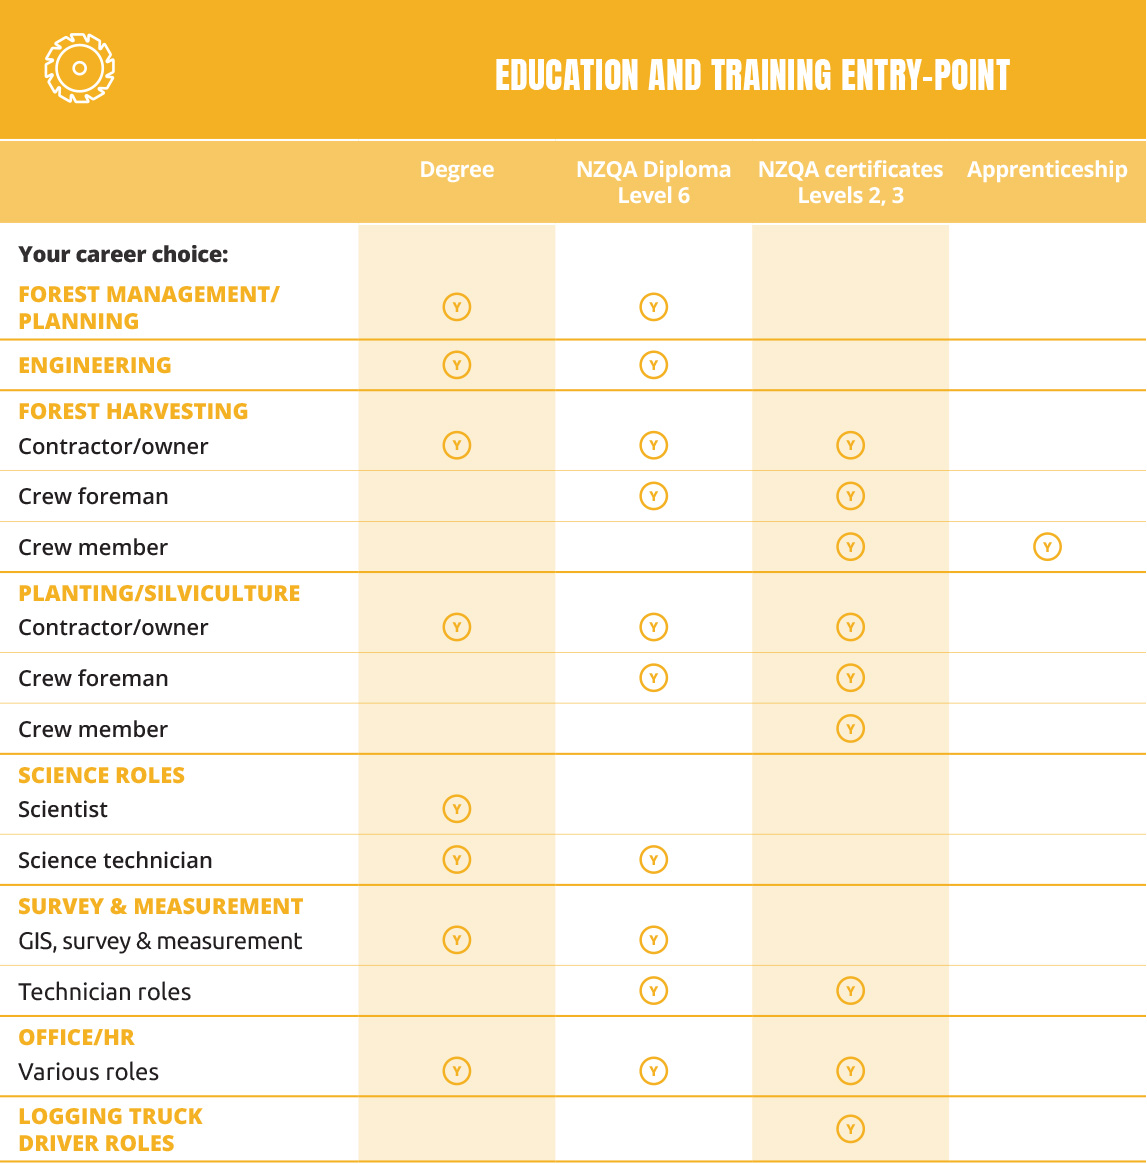 NZF 2657 Training and careers portal Entry and Training Entry Point Table